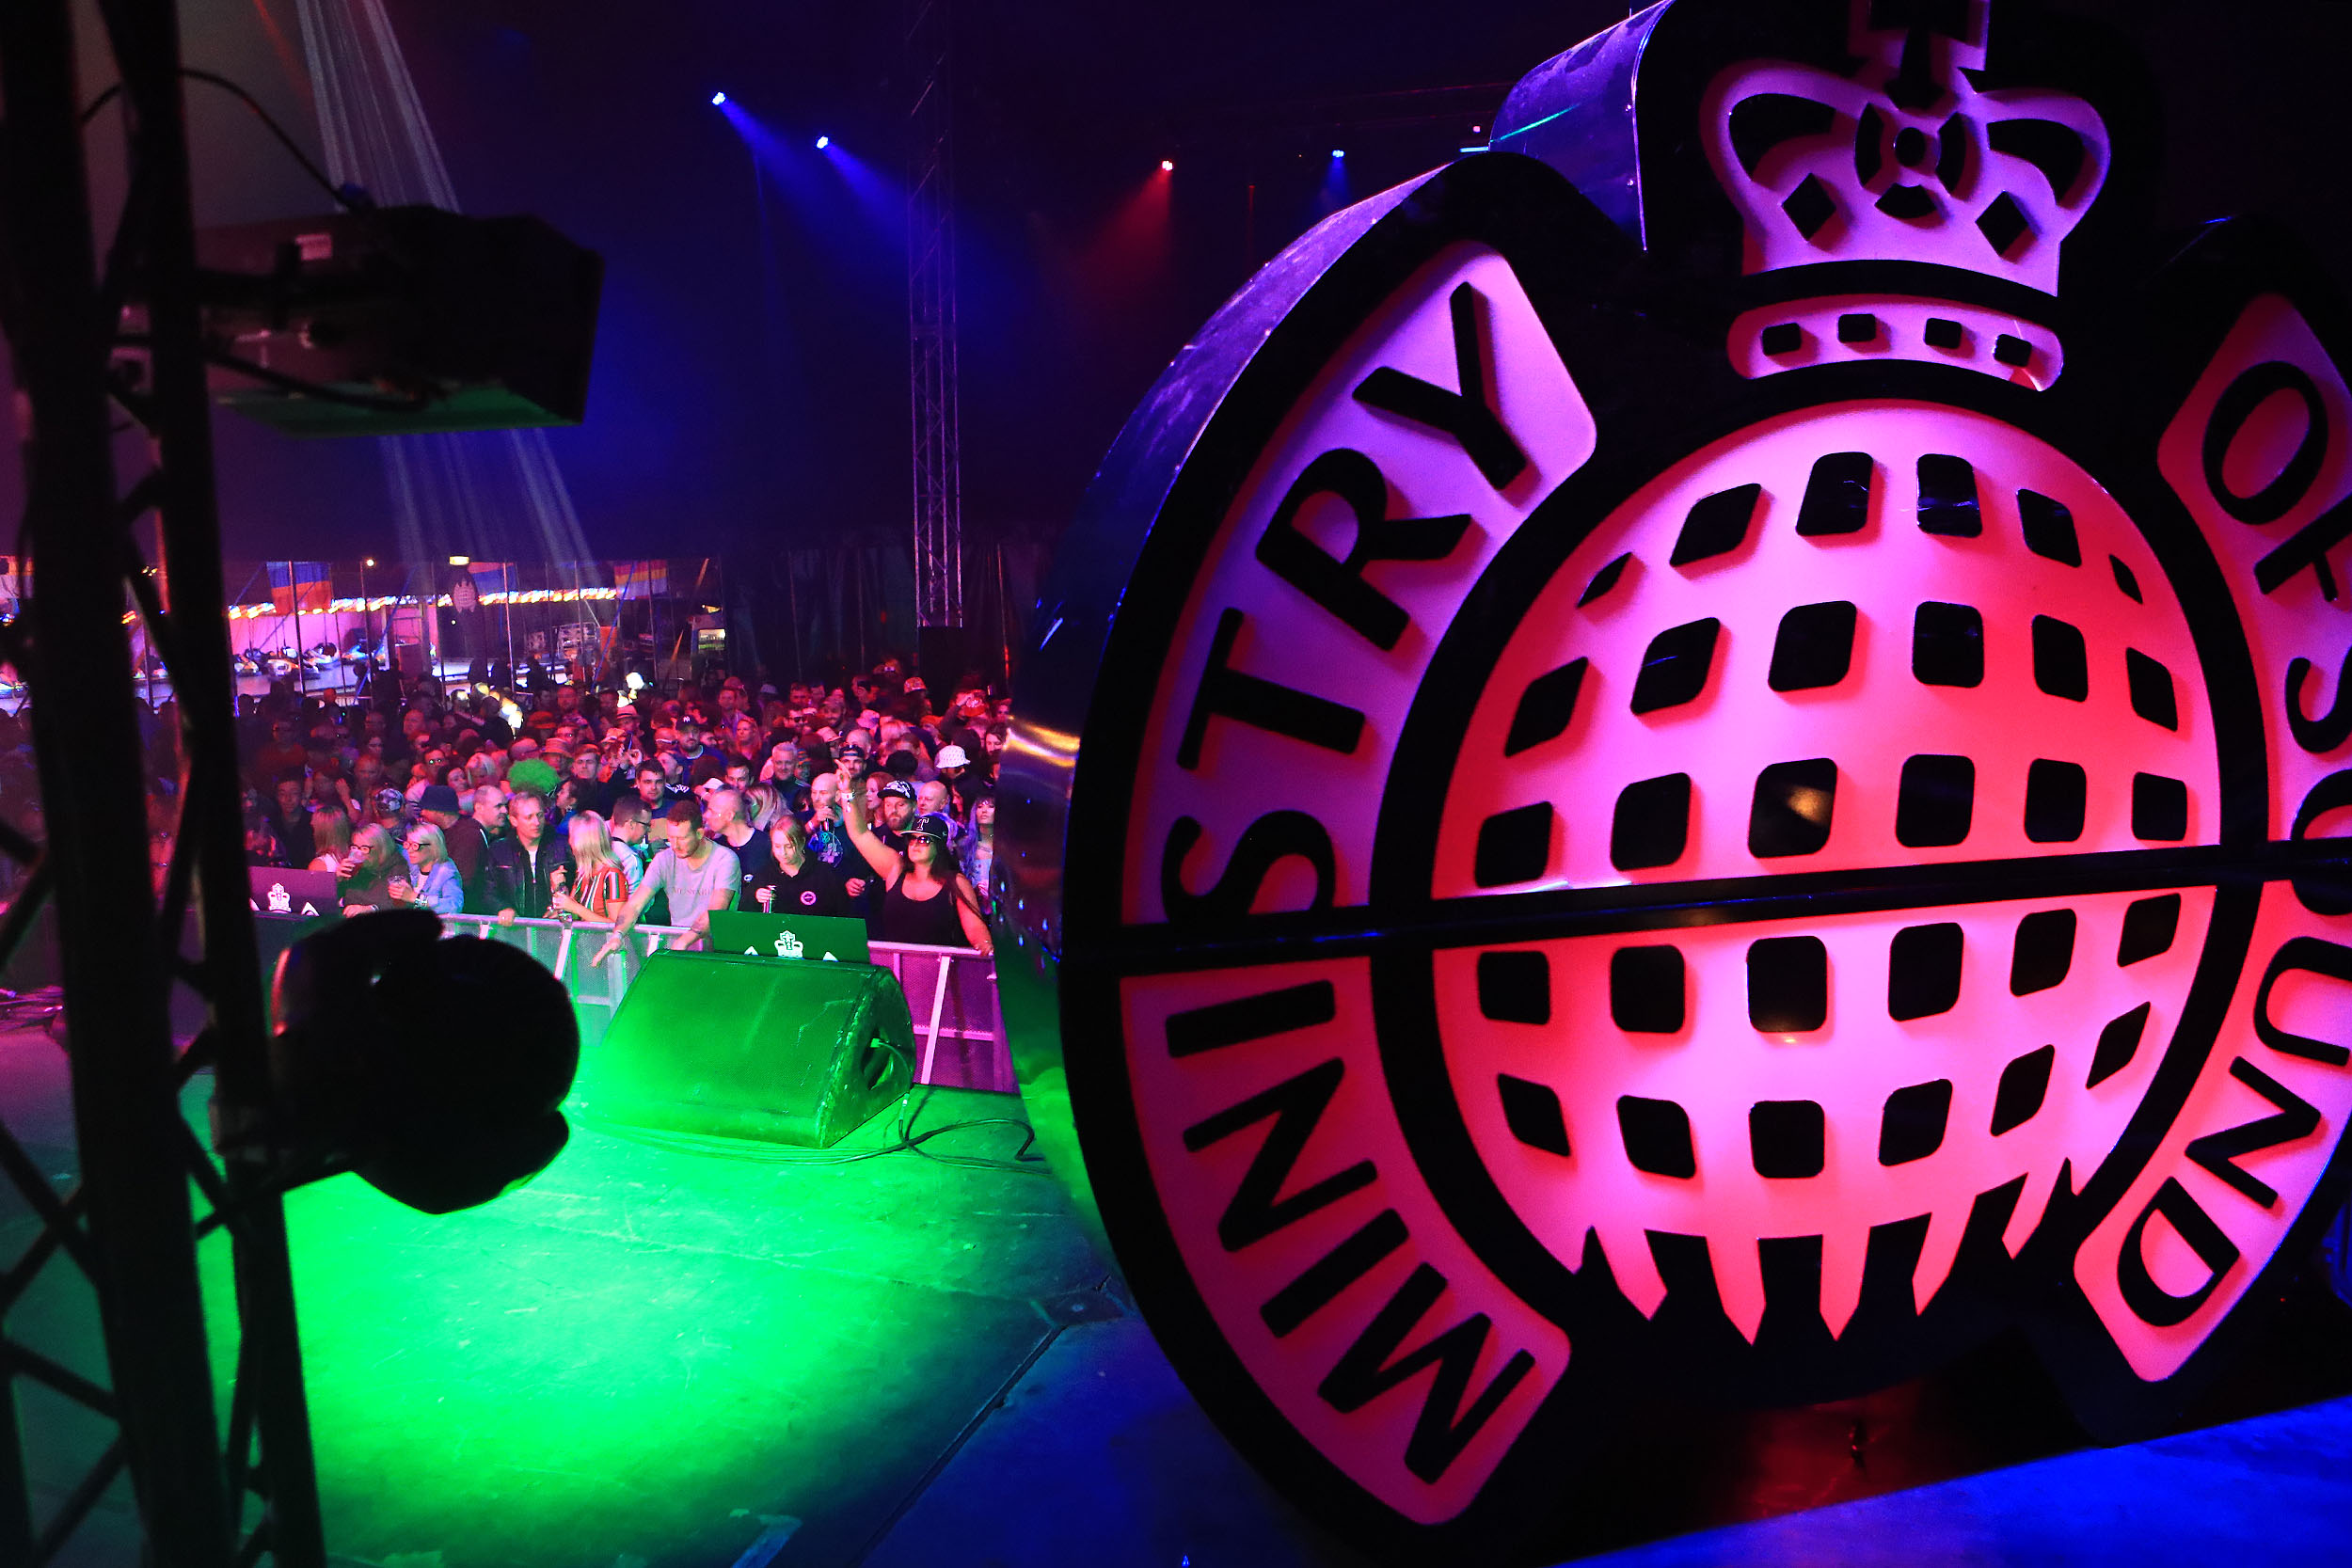 MINISTRY OF SOUND stage - Cool Britannia has teamed up with Ministry Of Sound to bring you some of the biggest DJ's from the best era performing over the weekend. When the actions stops on the main stage it's time to dance the night away. Head to the Ministry Of Sound Stage - Every night features 2 Ministry of Sound DJ's plus special guest Club Classic performances. Check out the line up page for a list of artists not to miss over the weekend at Knebworth.